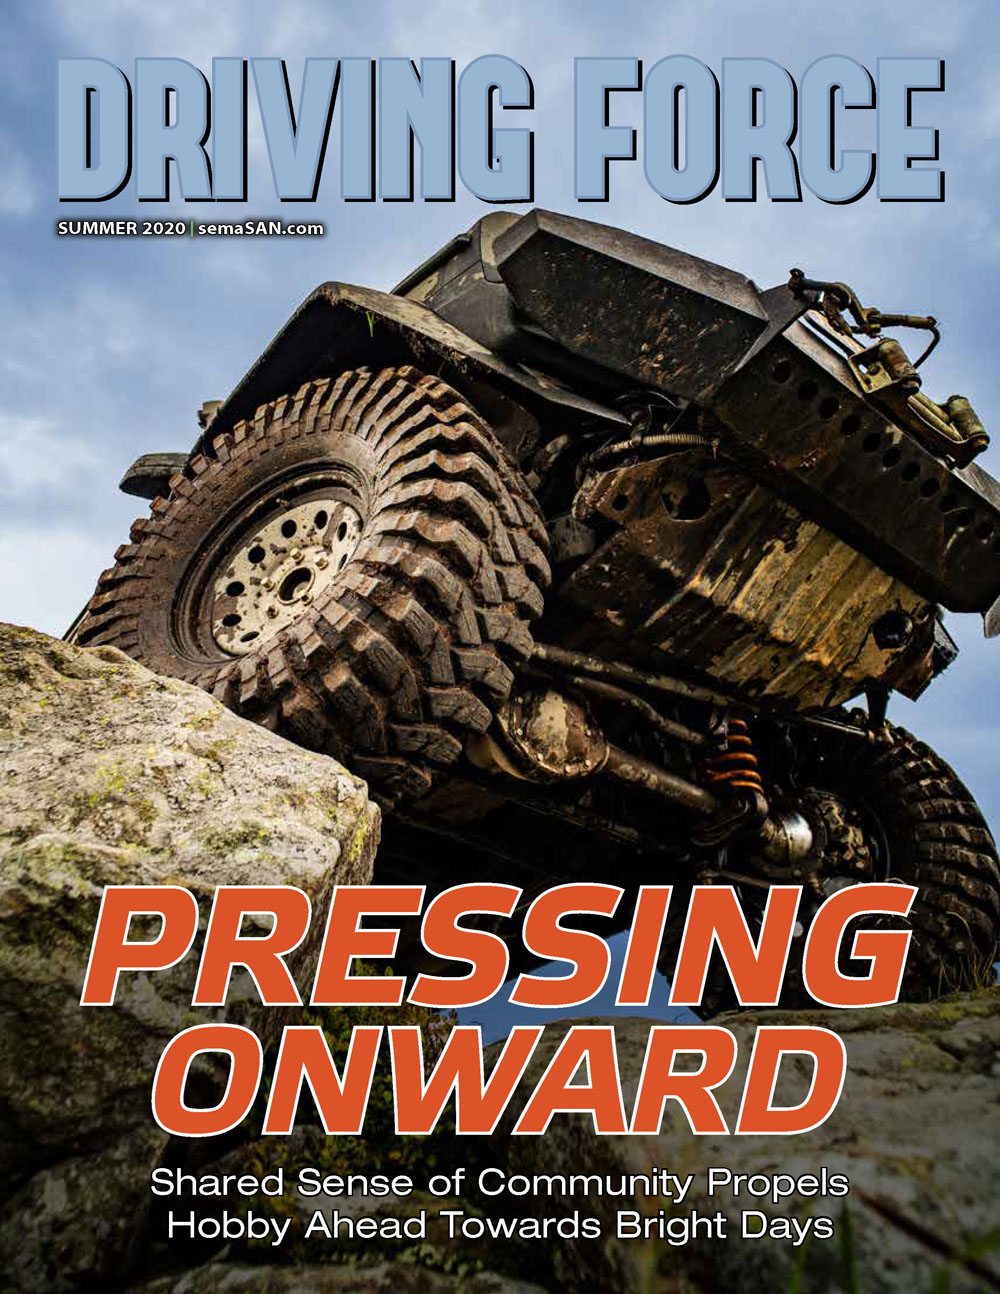 Current Issue of Driving Force, Summer 2020, SEMA Action Network